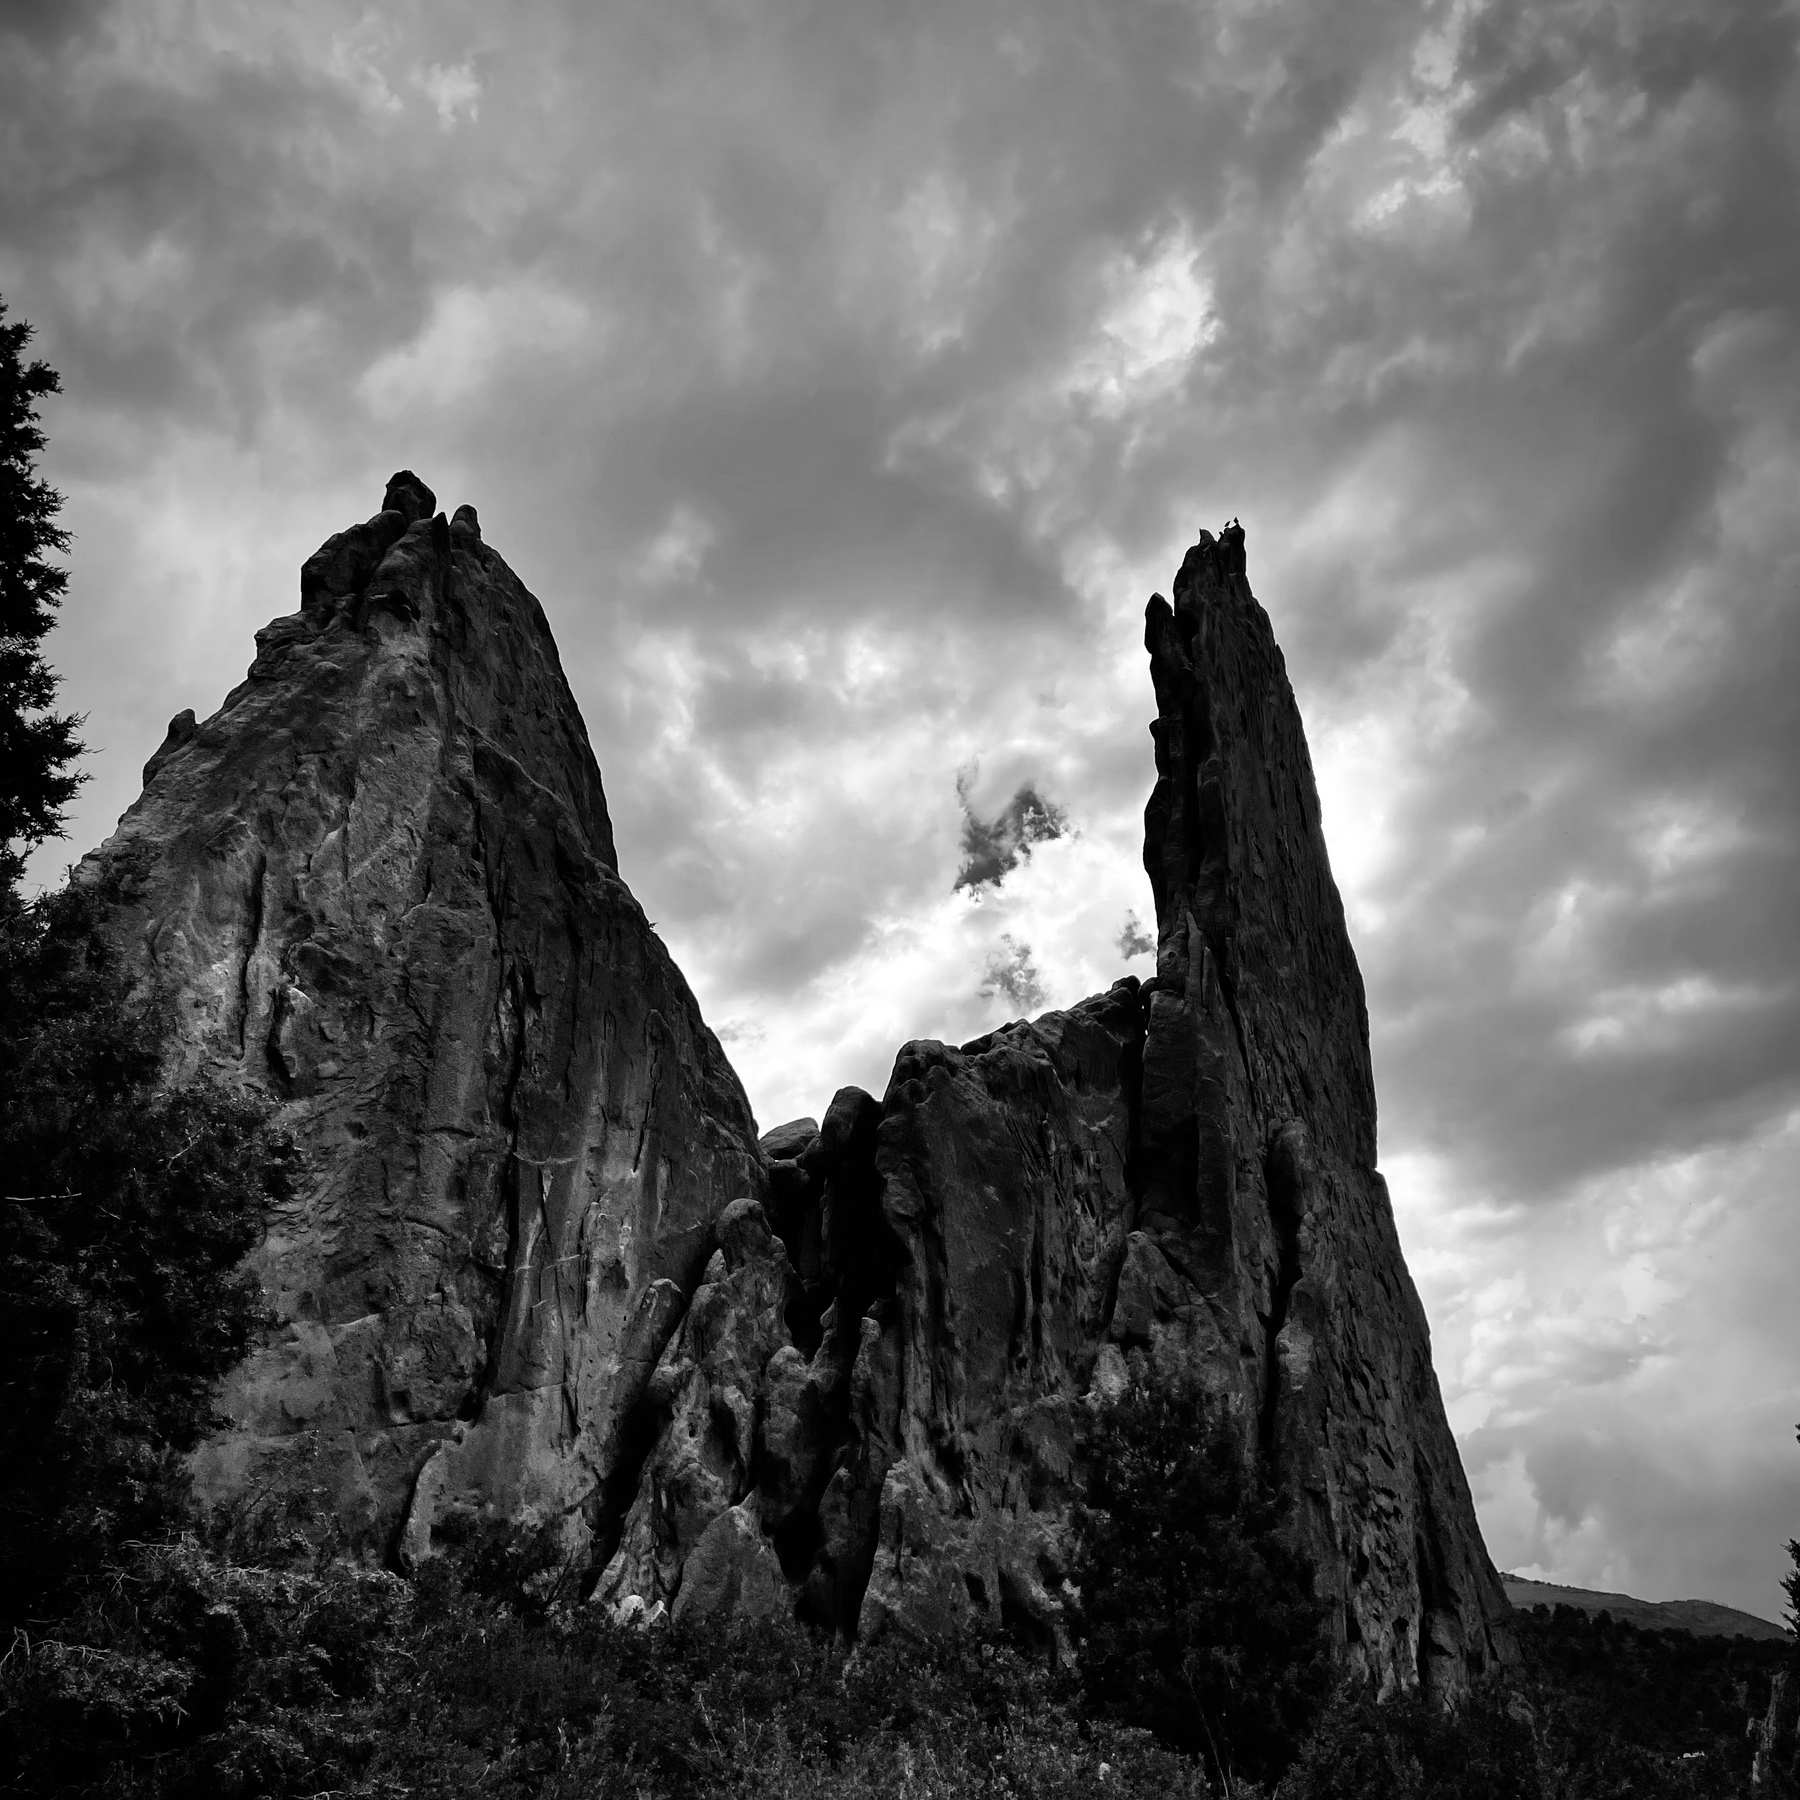 stone structure over cloudy sky, black and white